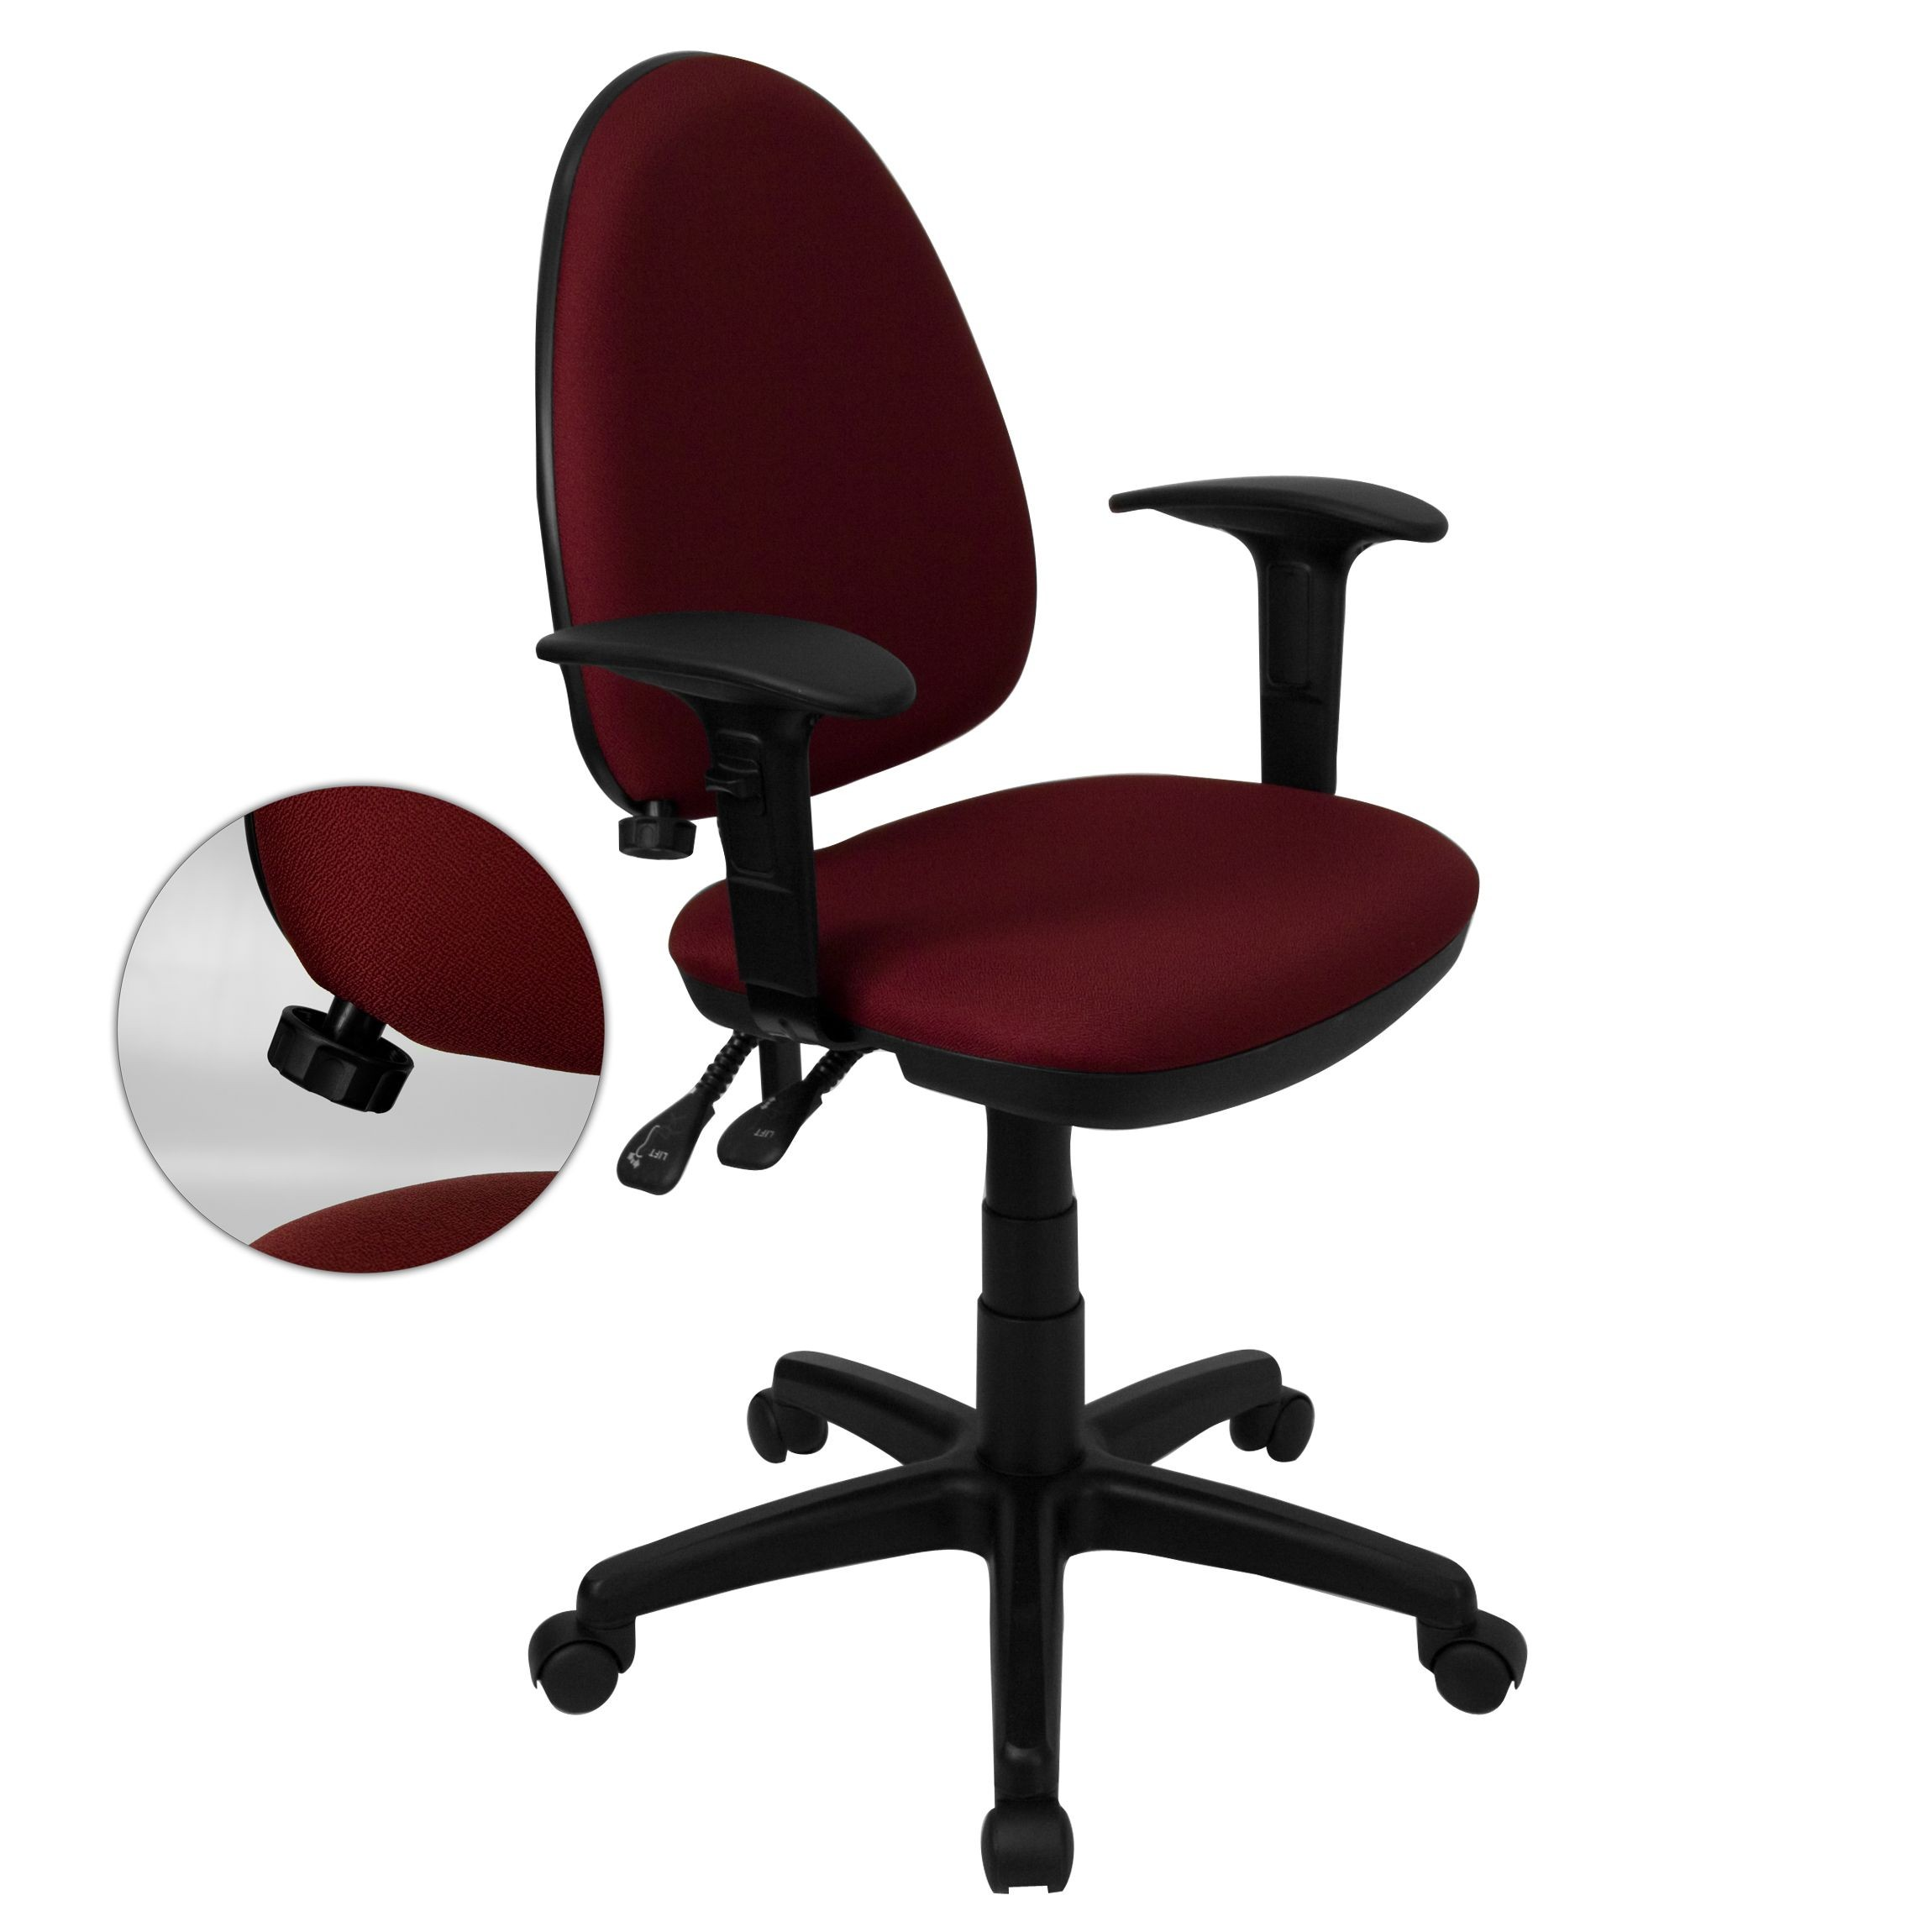 Burgundy Fabric Multi-Function Task Chair with Adjustable Lumbar Support, Arms